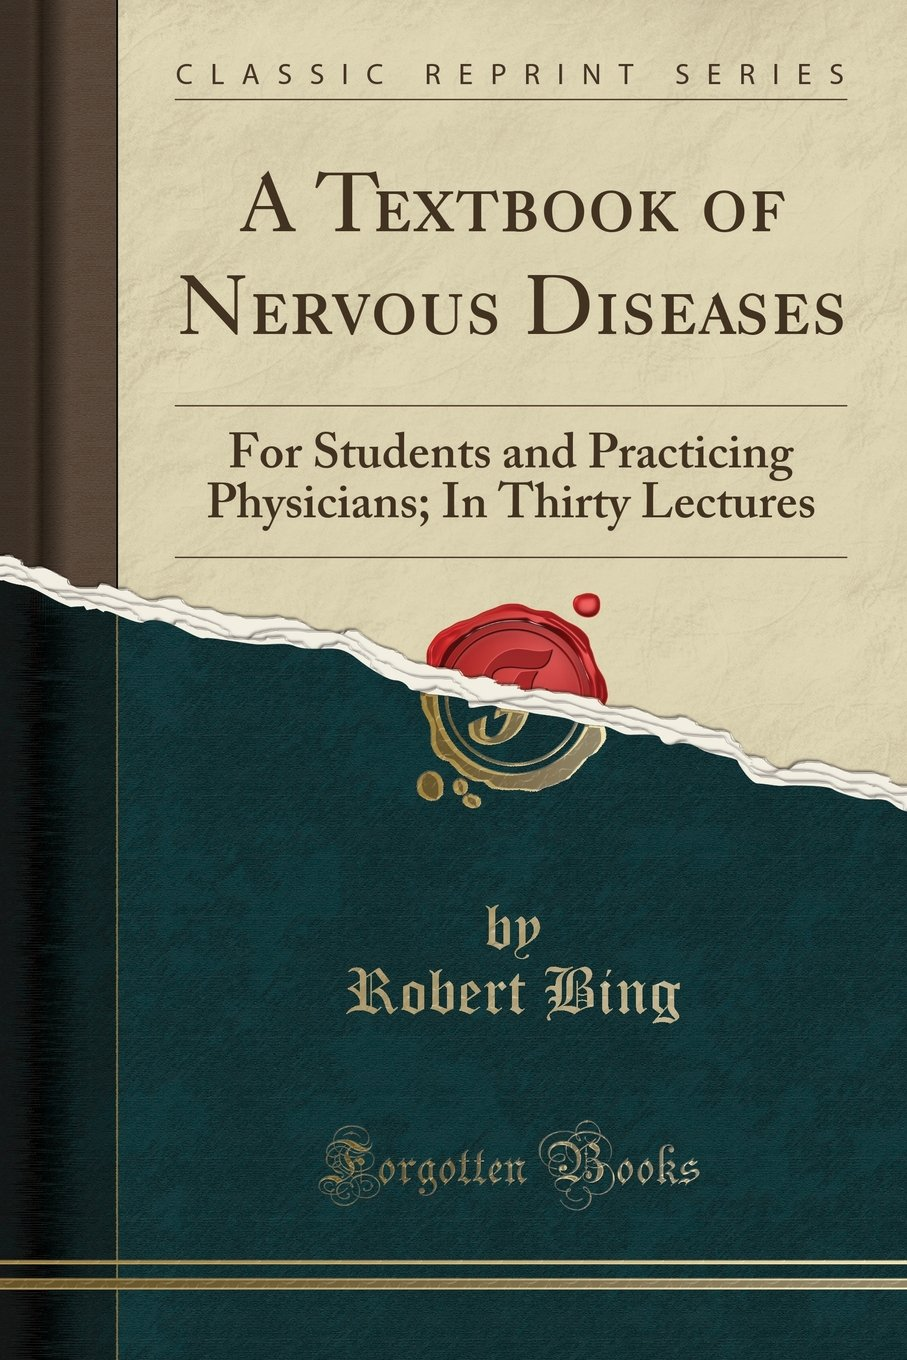 Download A Textbook of Nervous Diseases: For Students and Practicing Physicians; In Thirty Lectures (Classic Reprint) PDF